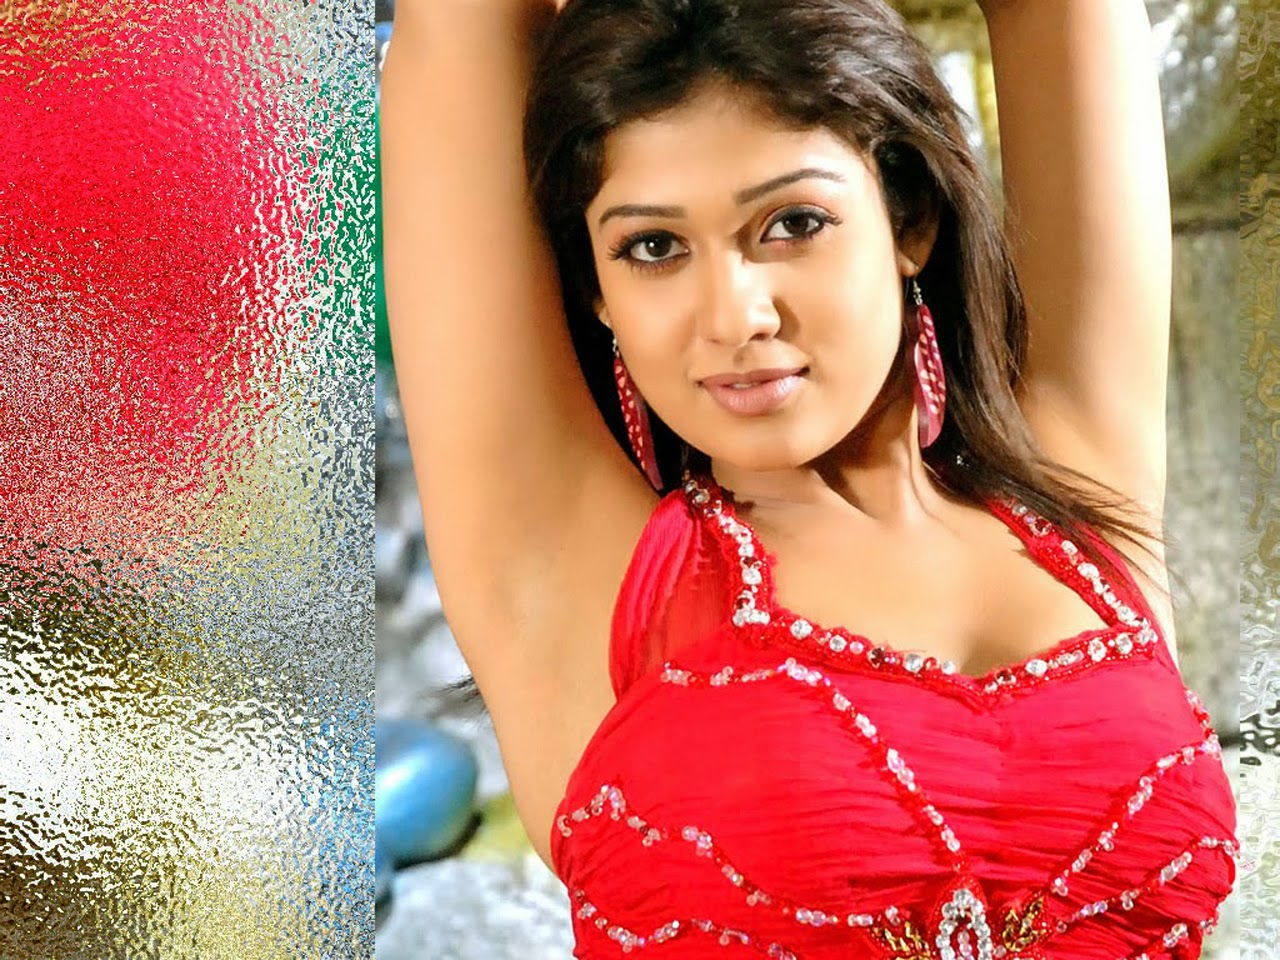 Indian Hot Actress Mallu Actress Nayanthara Hot Sexy -4020